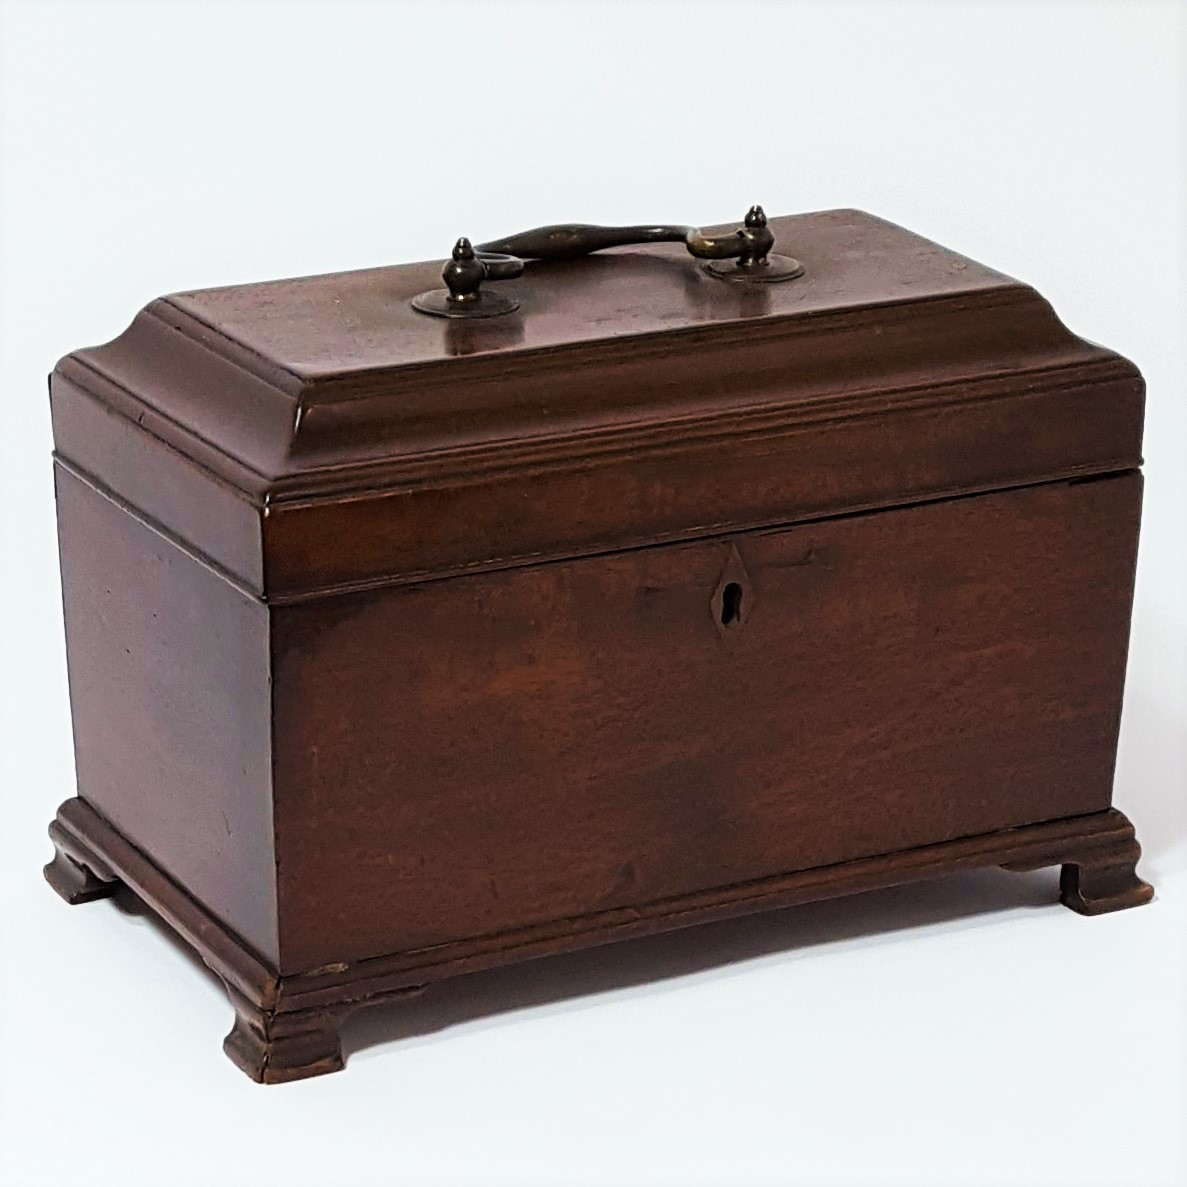 Chippendale Tea Caddy c1770